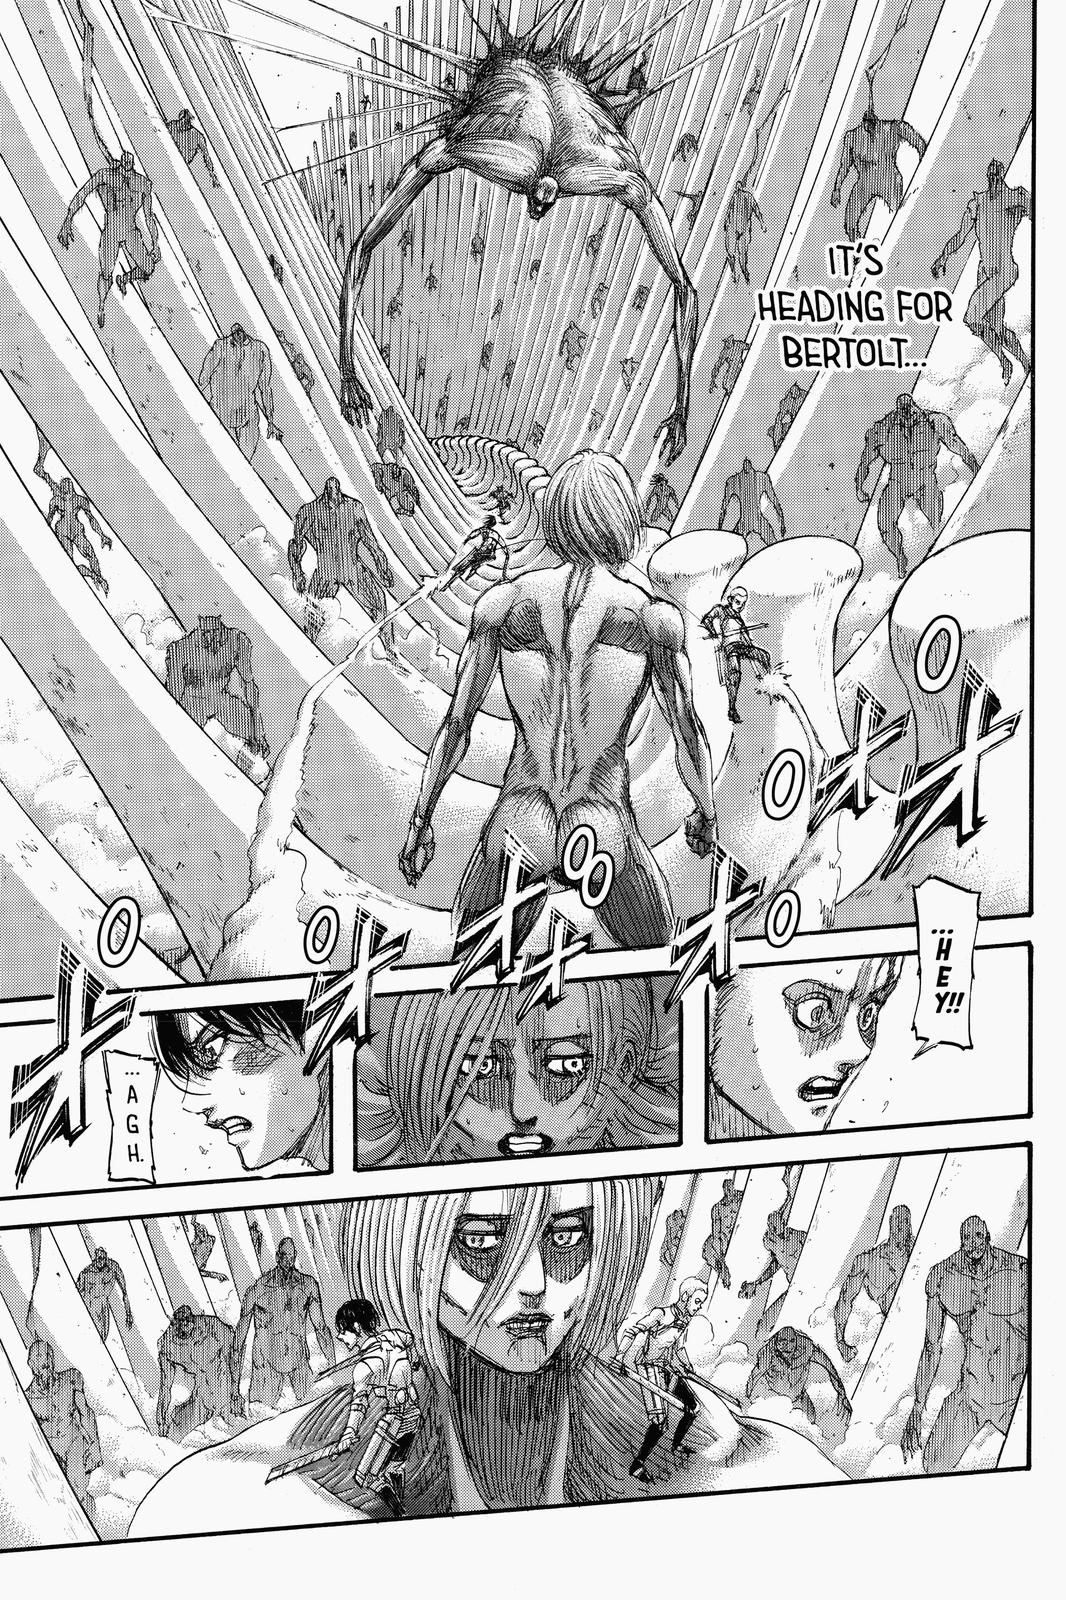 Shingeki No Kyojin Chapter 136 In 2021 Attack On Titan Anime Attack On Titan Fanart Attack On Titan Art Read the topic about shingeki no kyojin chapter 136 discussion on myanimelist, and join in the discussion on the largest online anime and manga database in the world! shingeki no kyojin chapter 136 in 2021